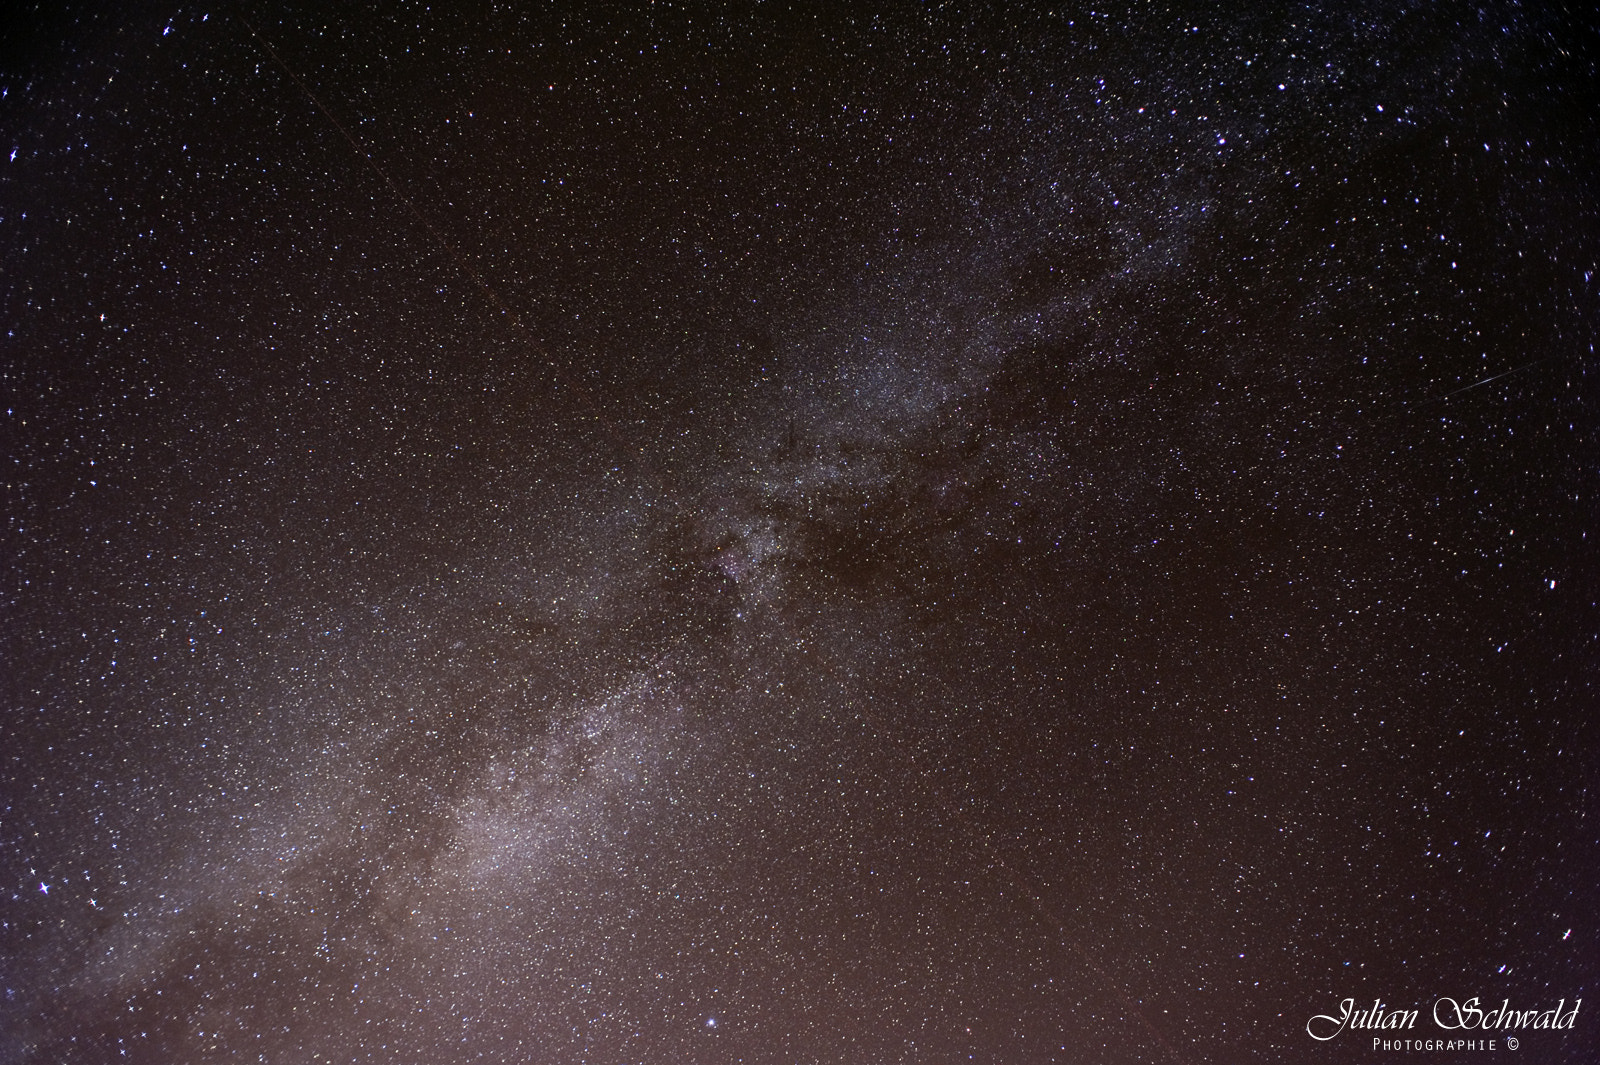 Photograph Milky Way by Julian Schwald on 500px